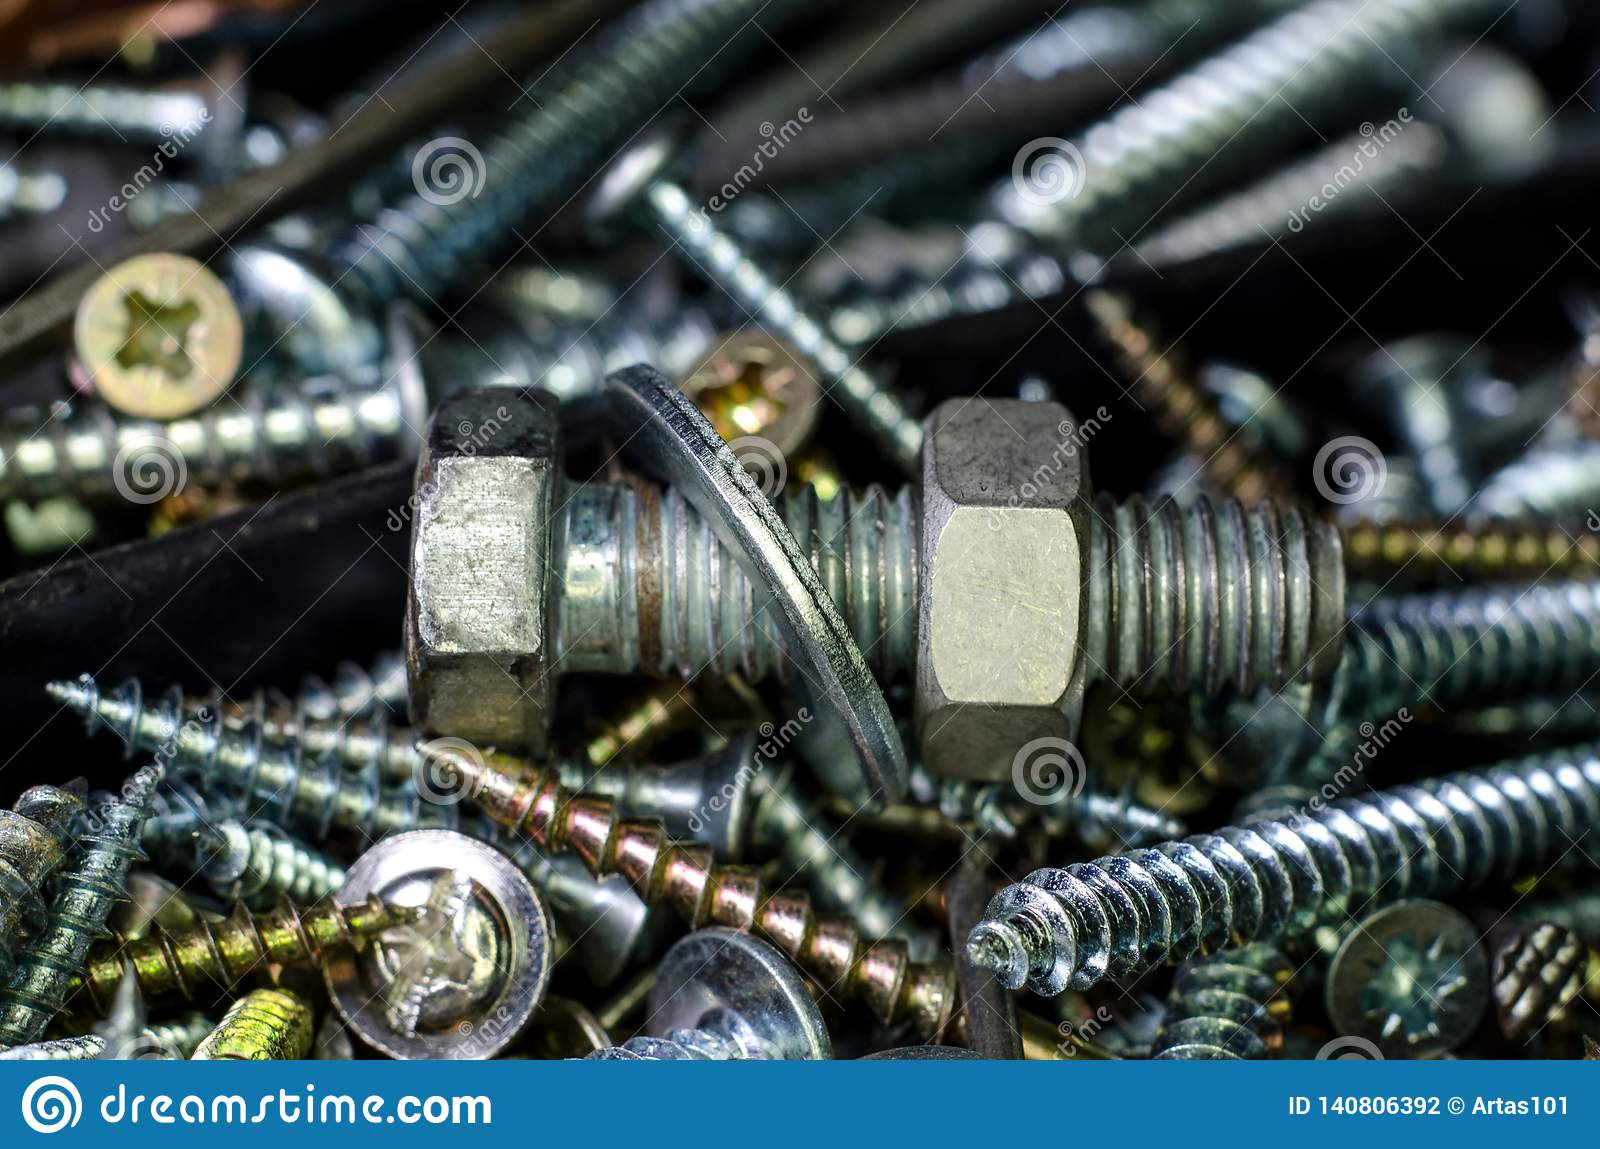 Nuts and bolts stock photo  Image of building, background